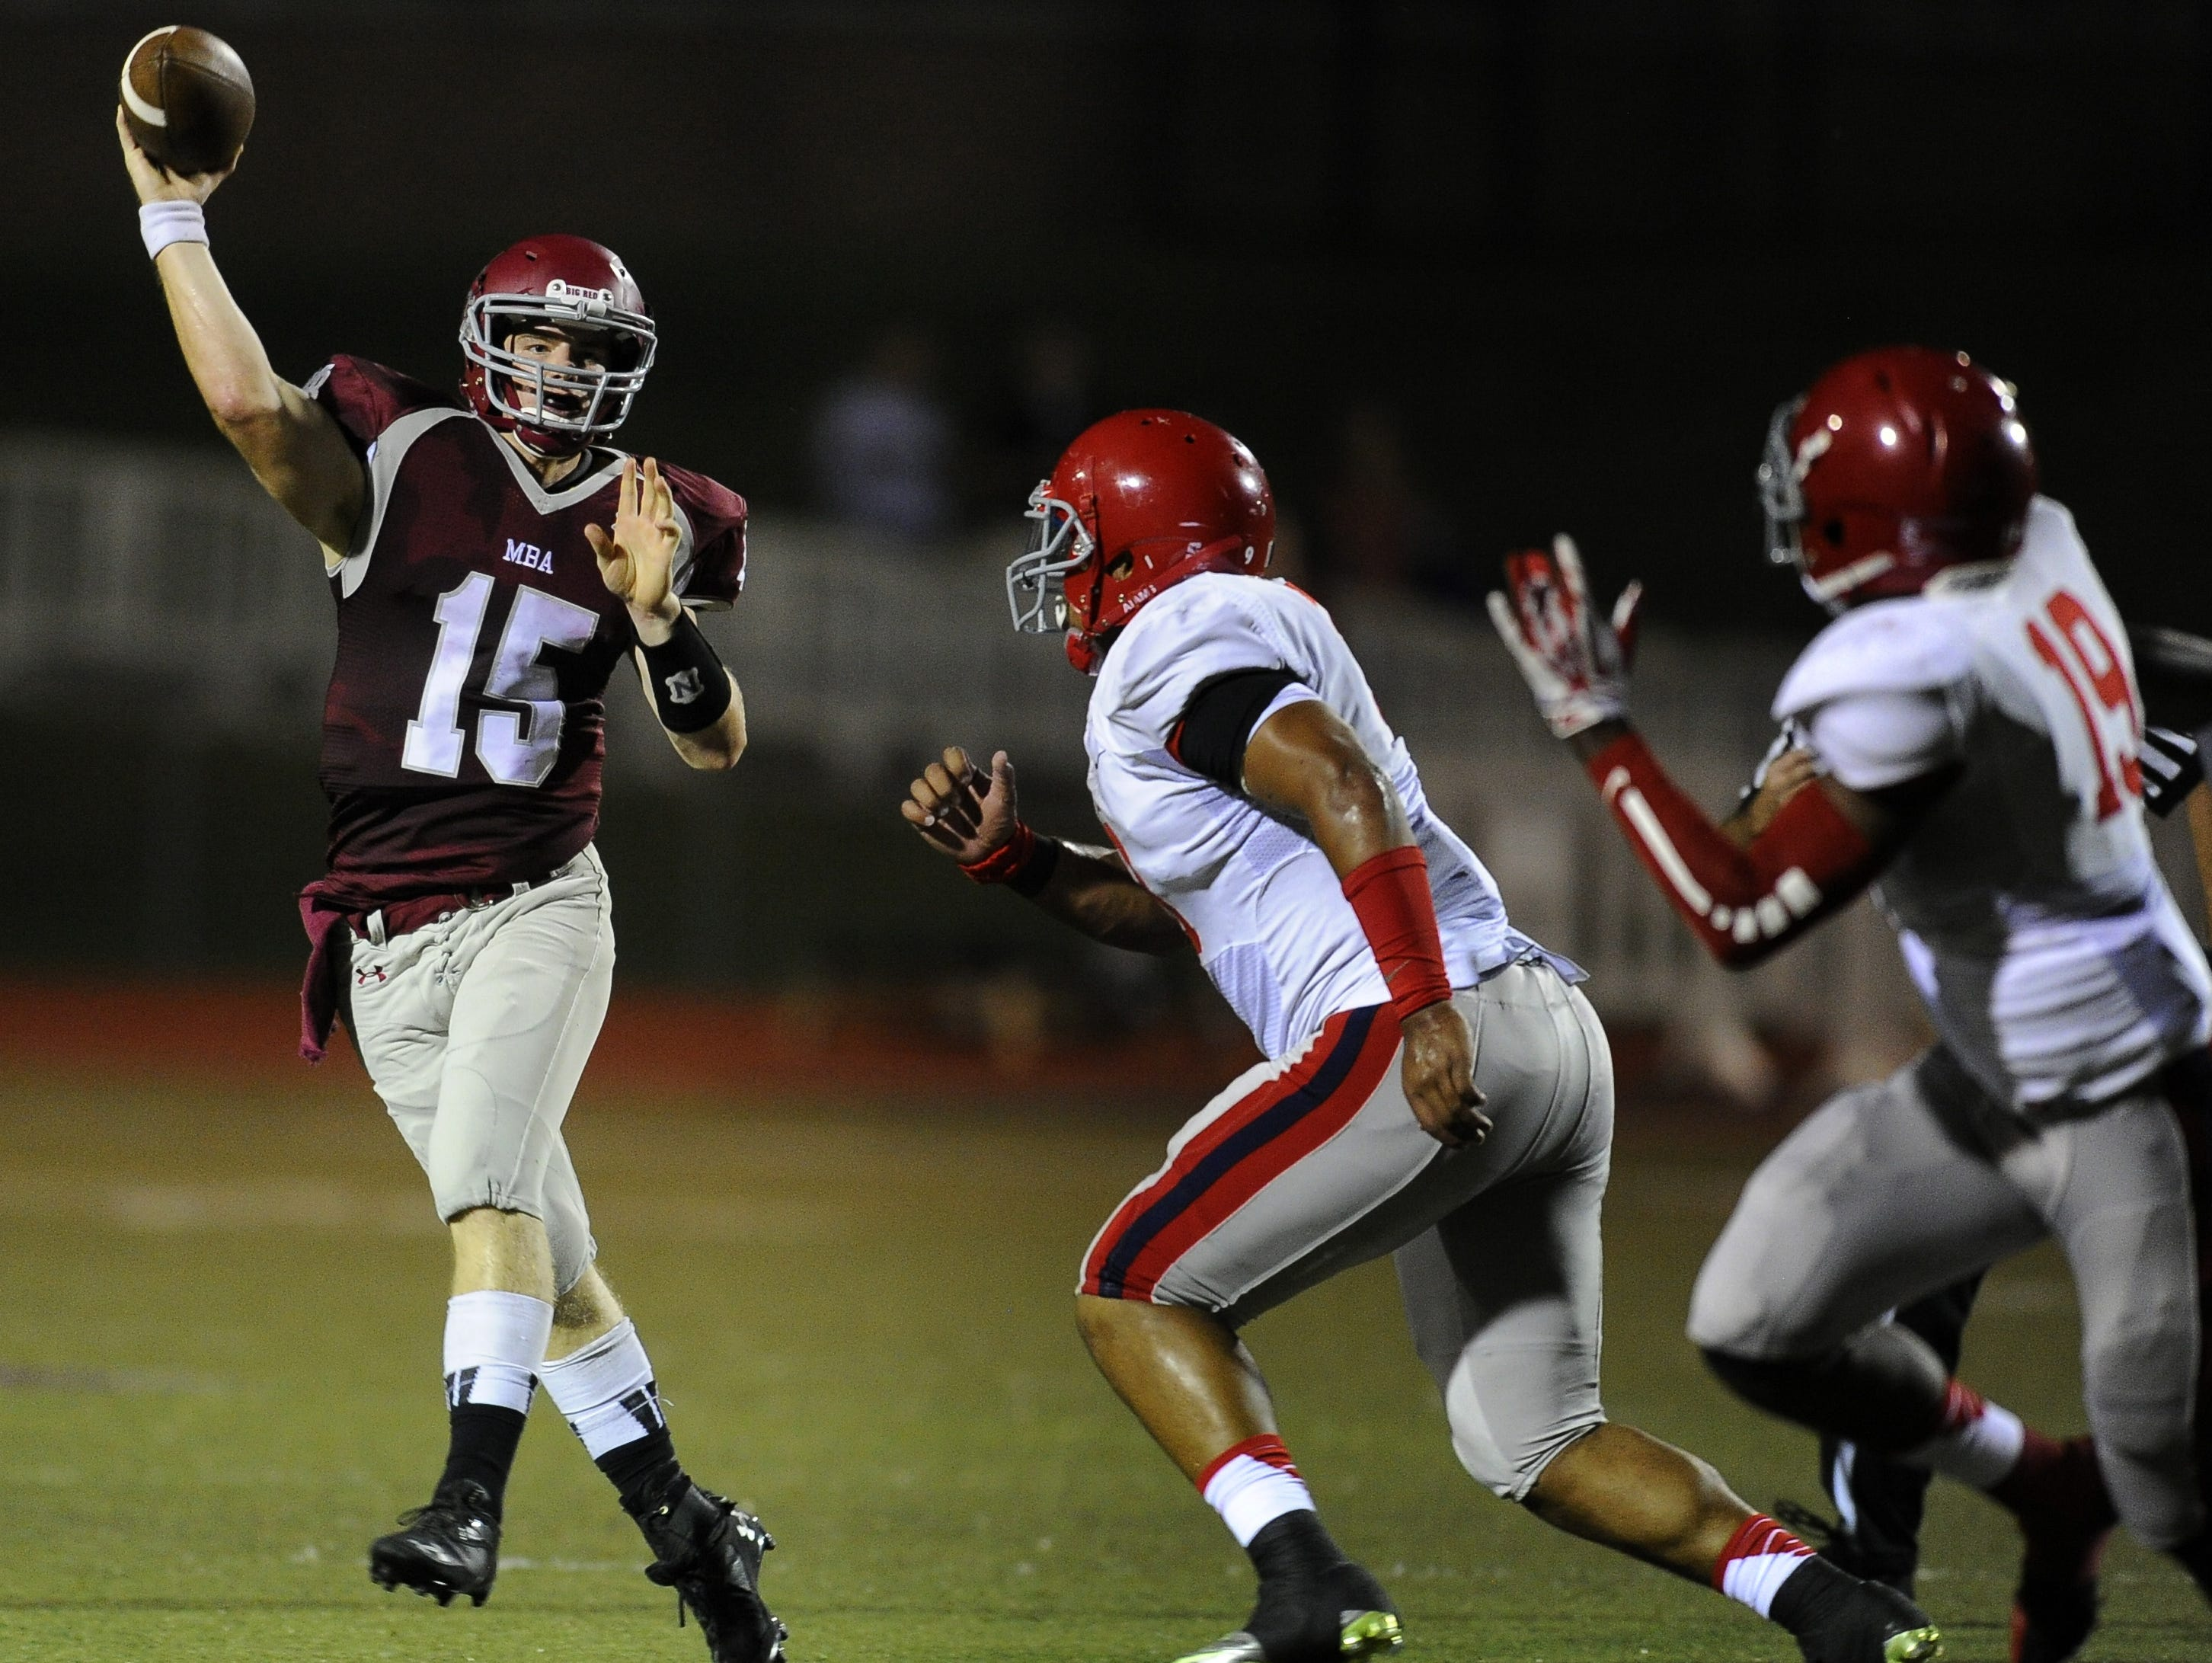 Montgomery Bell quarterback Cole Euverard (15) throws a pass past the Brentwood Academy defense during their game Friday Sept. 20, 2013, in Nashville, Tenn.